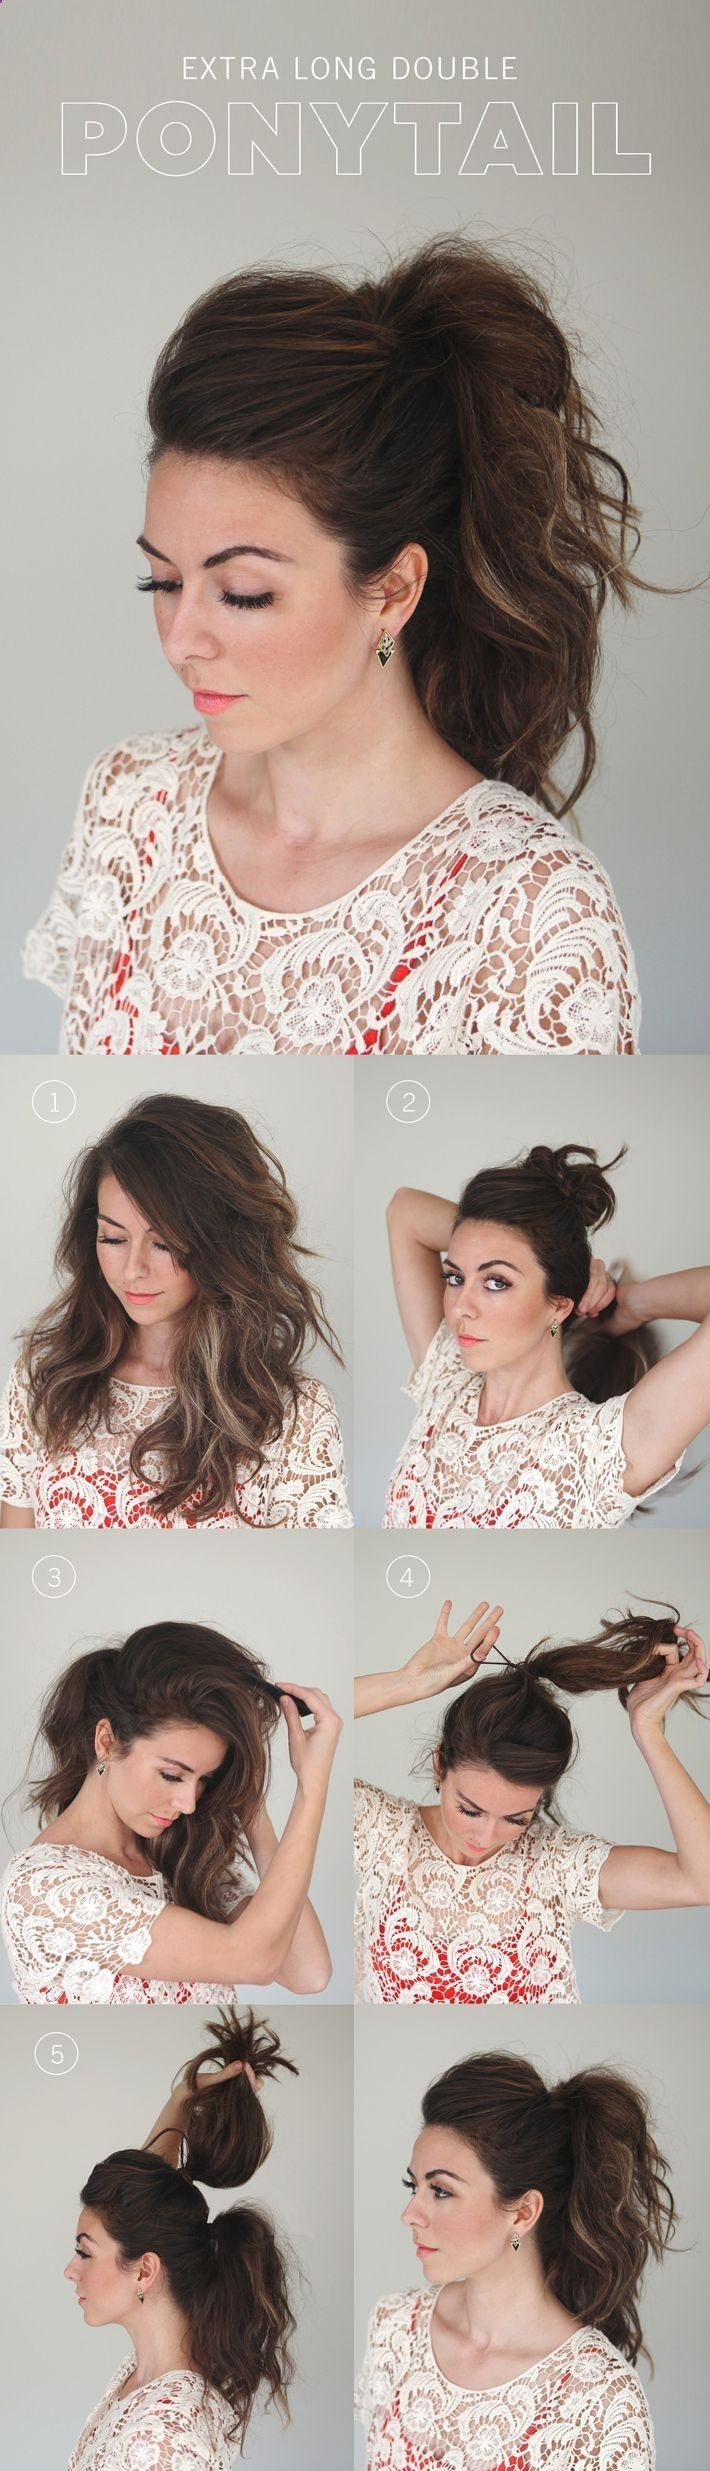 best 25+ tied up hairstyles ideas on pinterest | easy hair up